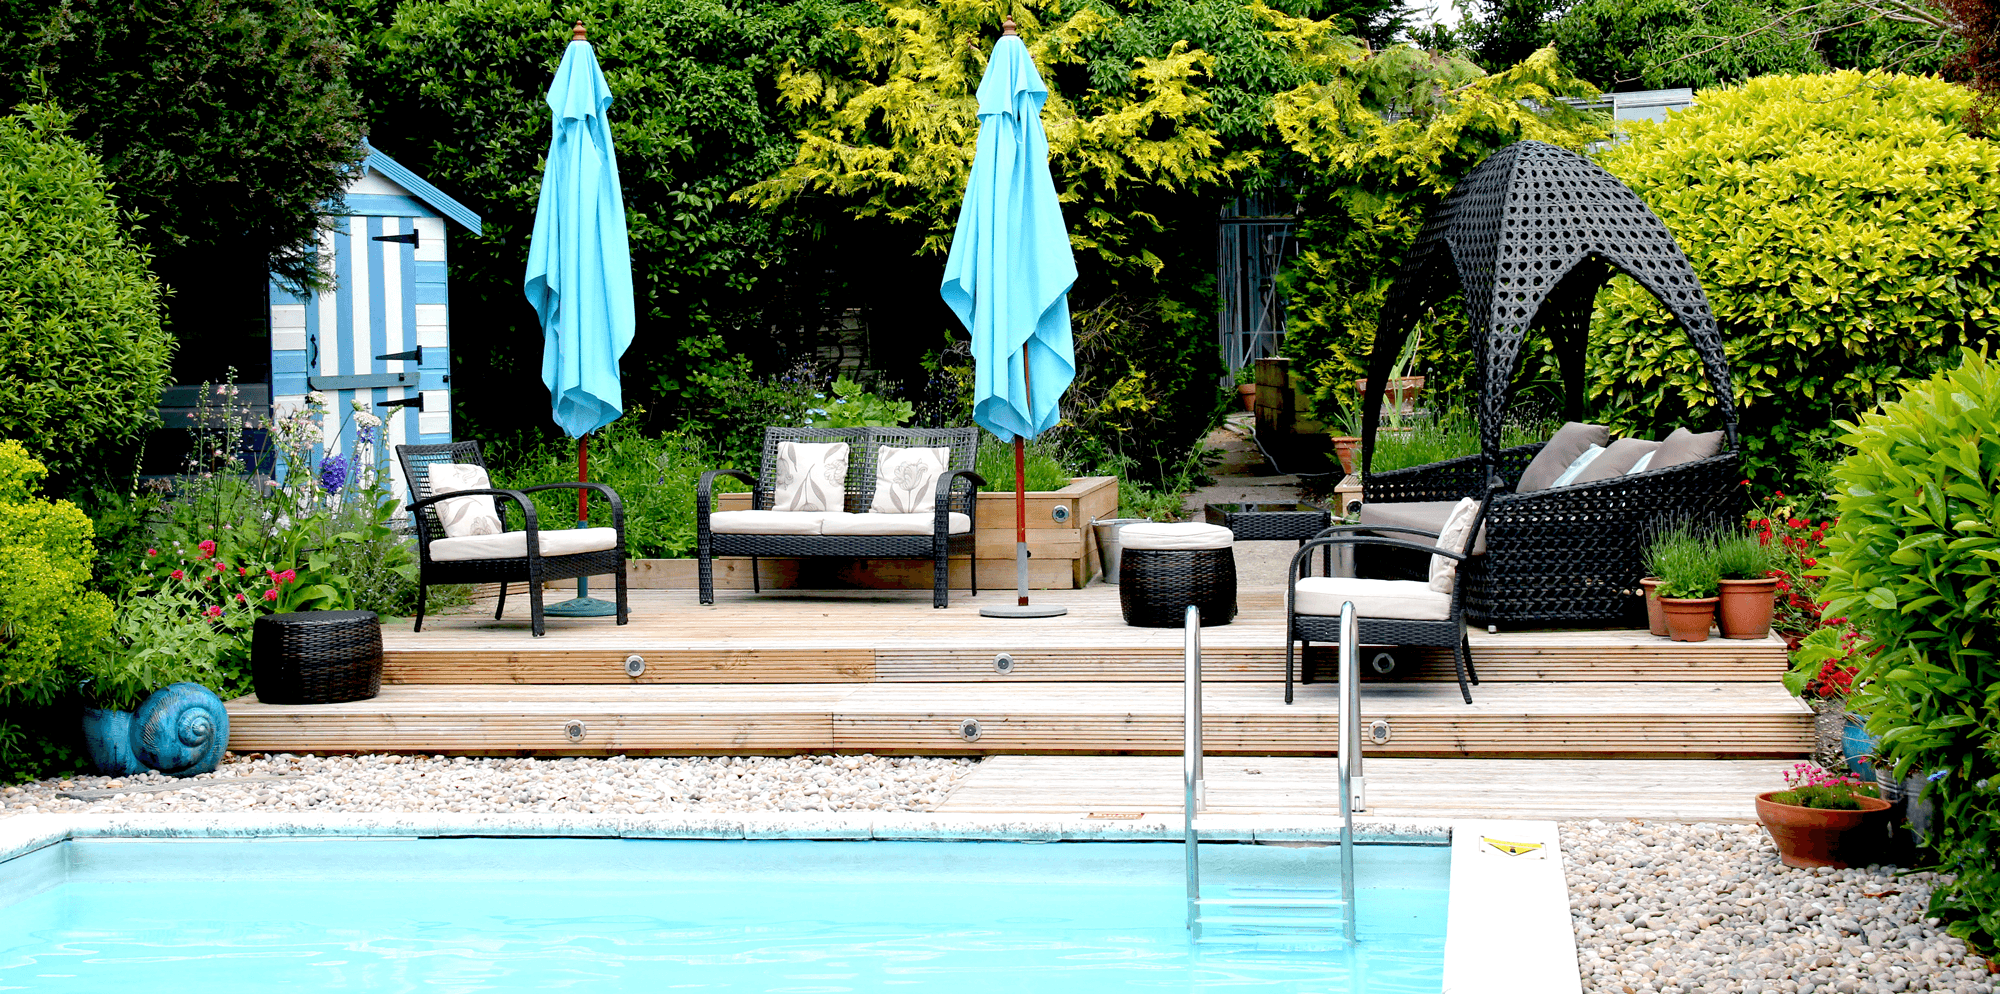 Chilled poolside sundeck by the pool at Springwells in Steyning